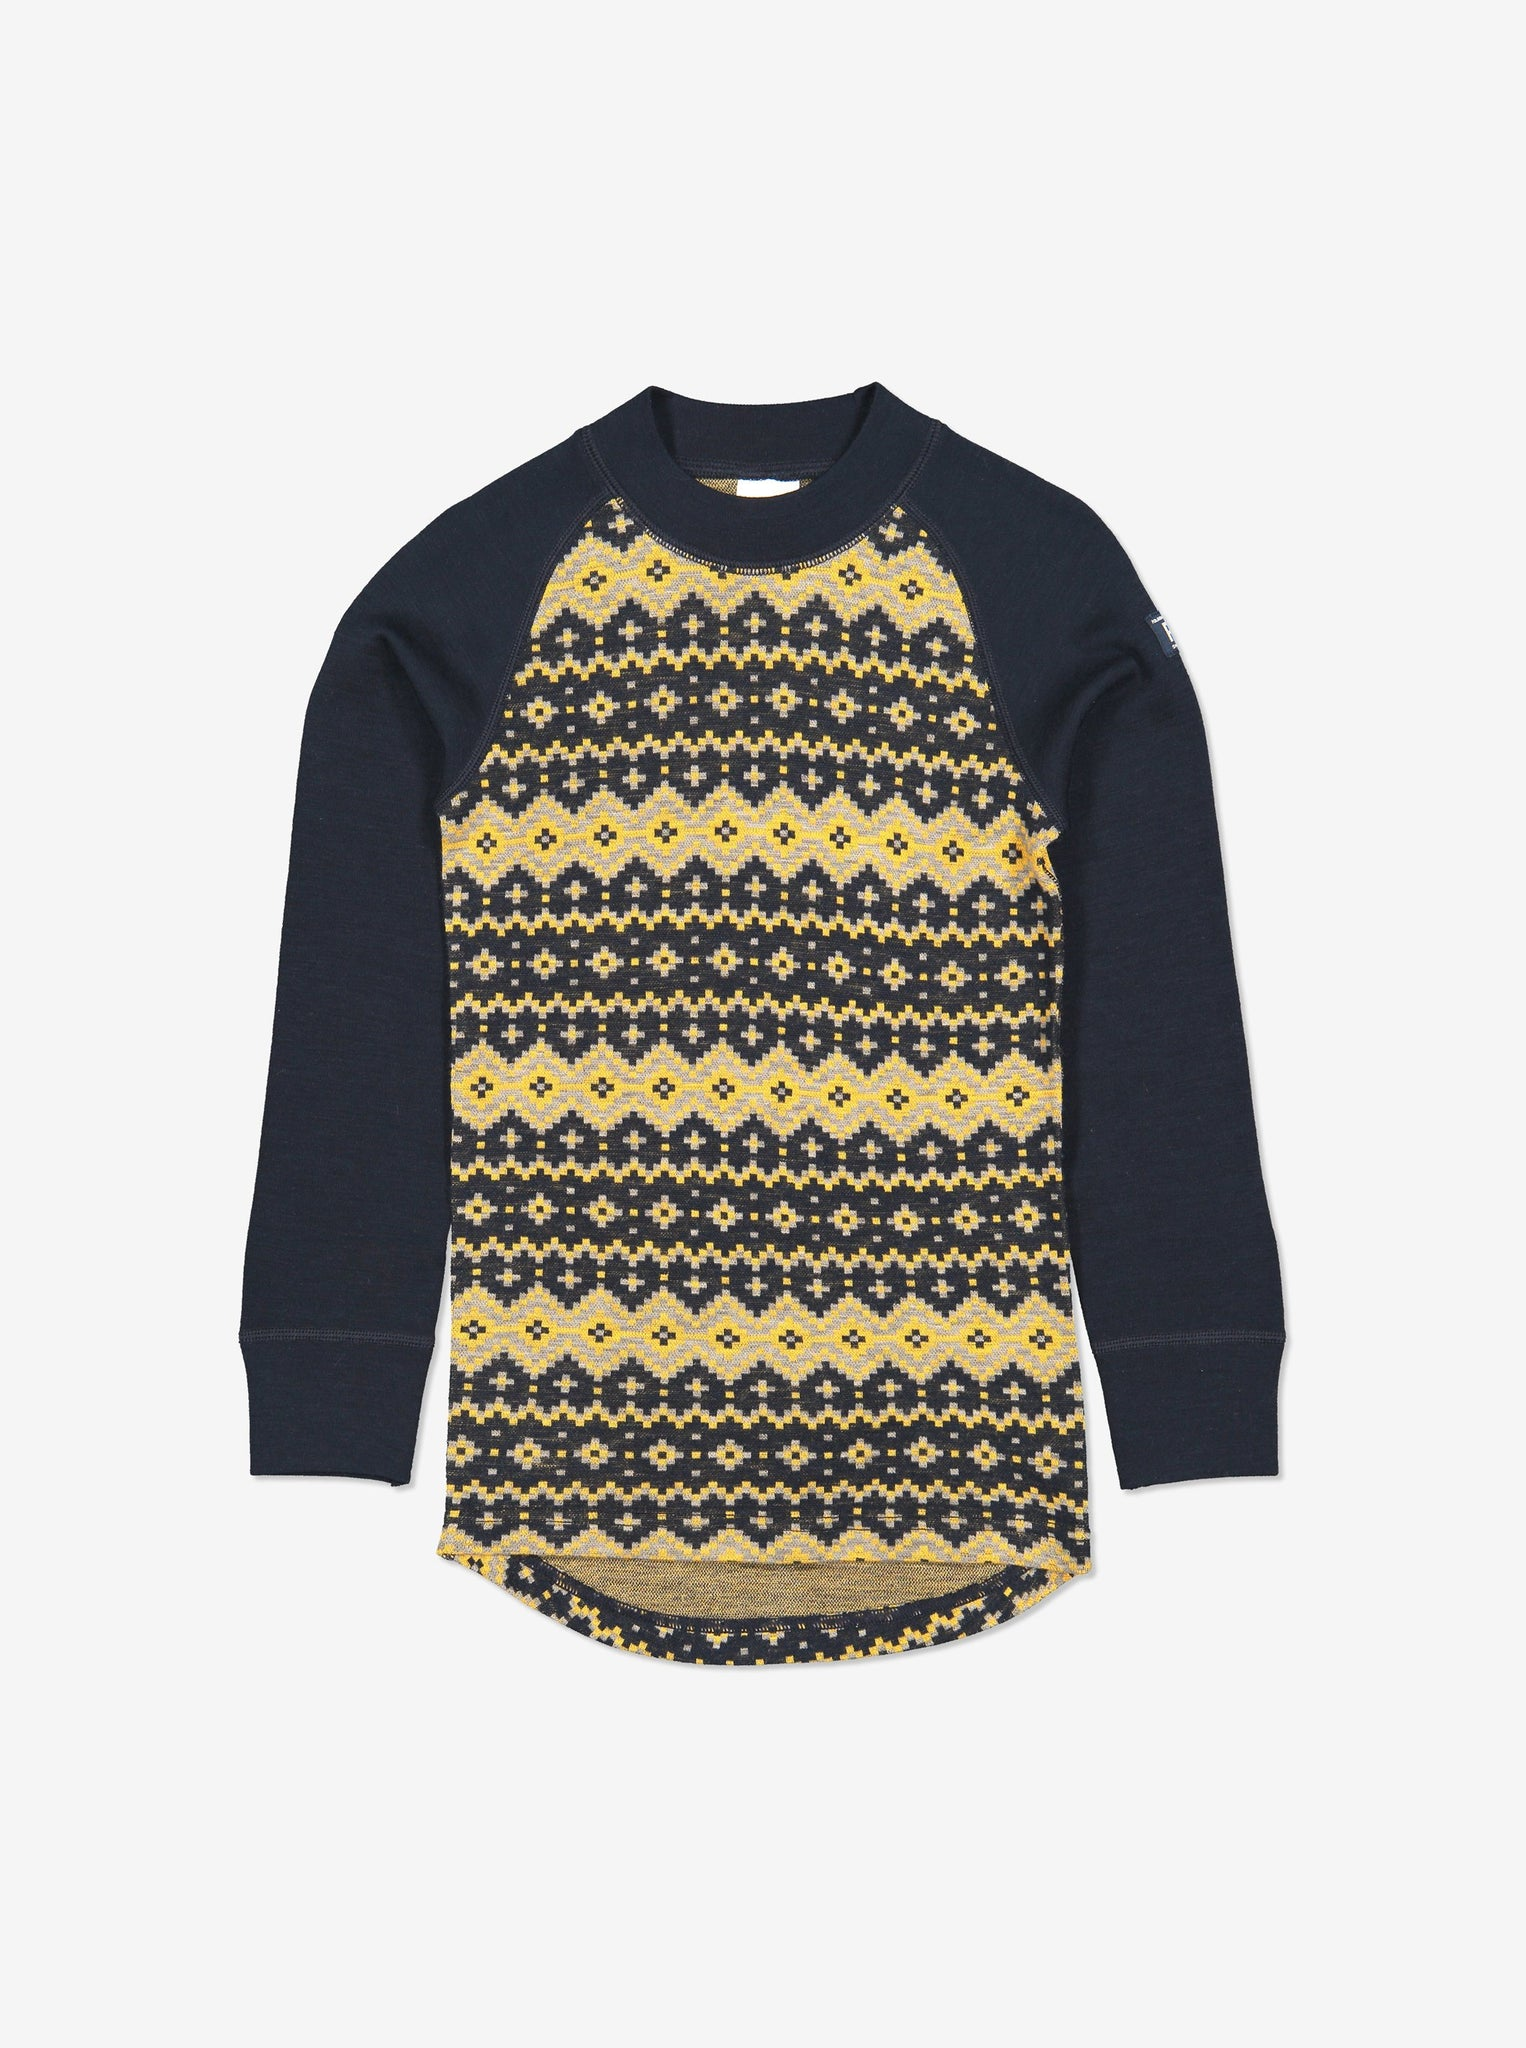 Nordic Thermal Merino Kids Top-1-8y-Navy-Boy